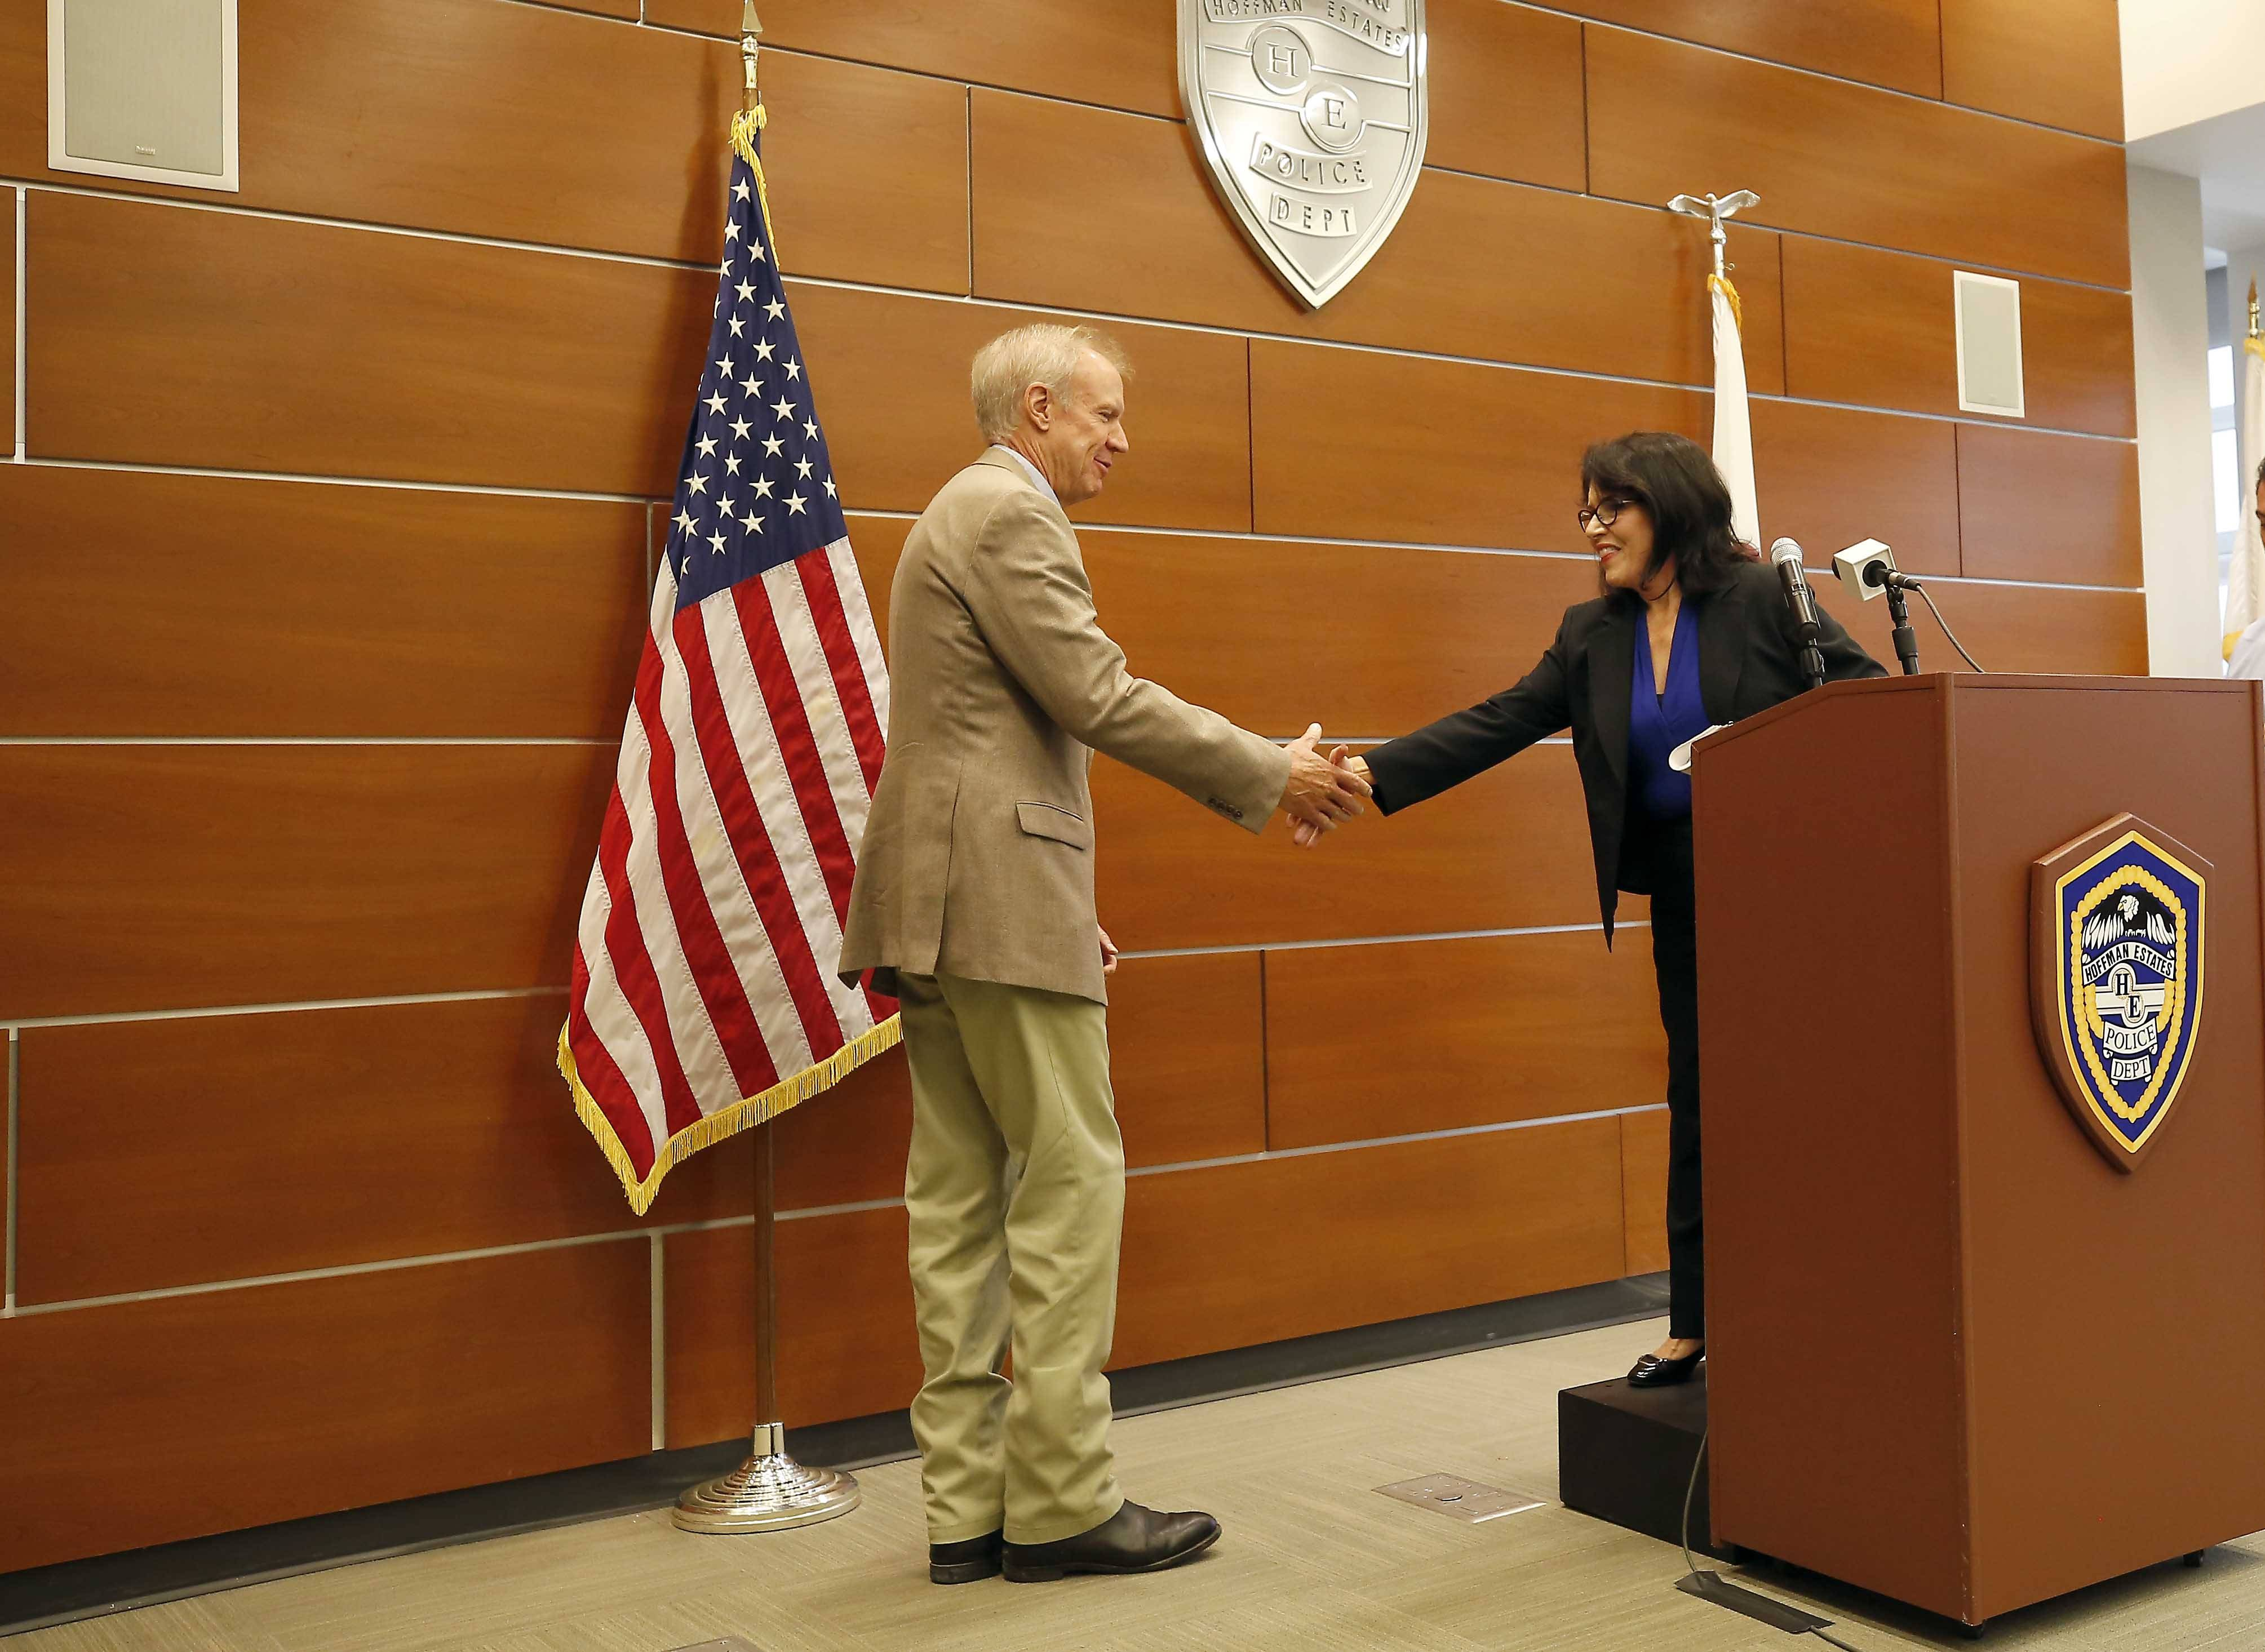 Lt. Gov. Evelyn Sanguinetti greets Gov. Bruce Rauner Tuesday at the Hoffman Estates Police Department, where they acknowledged the effectiveness of the Joint Emergency Management System.